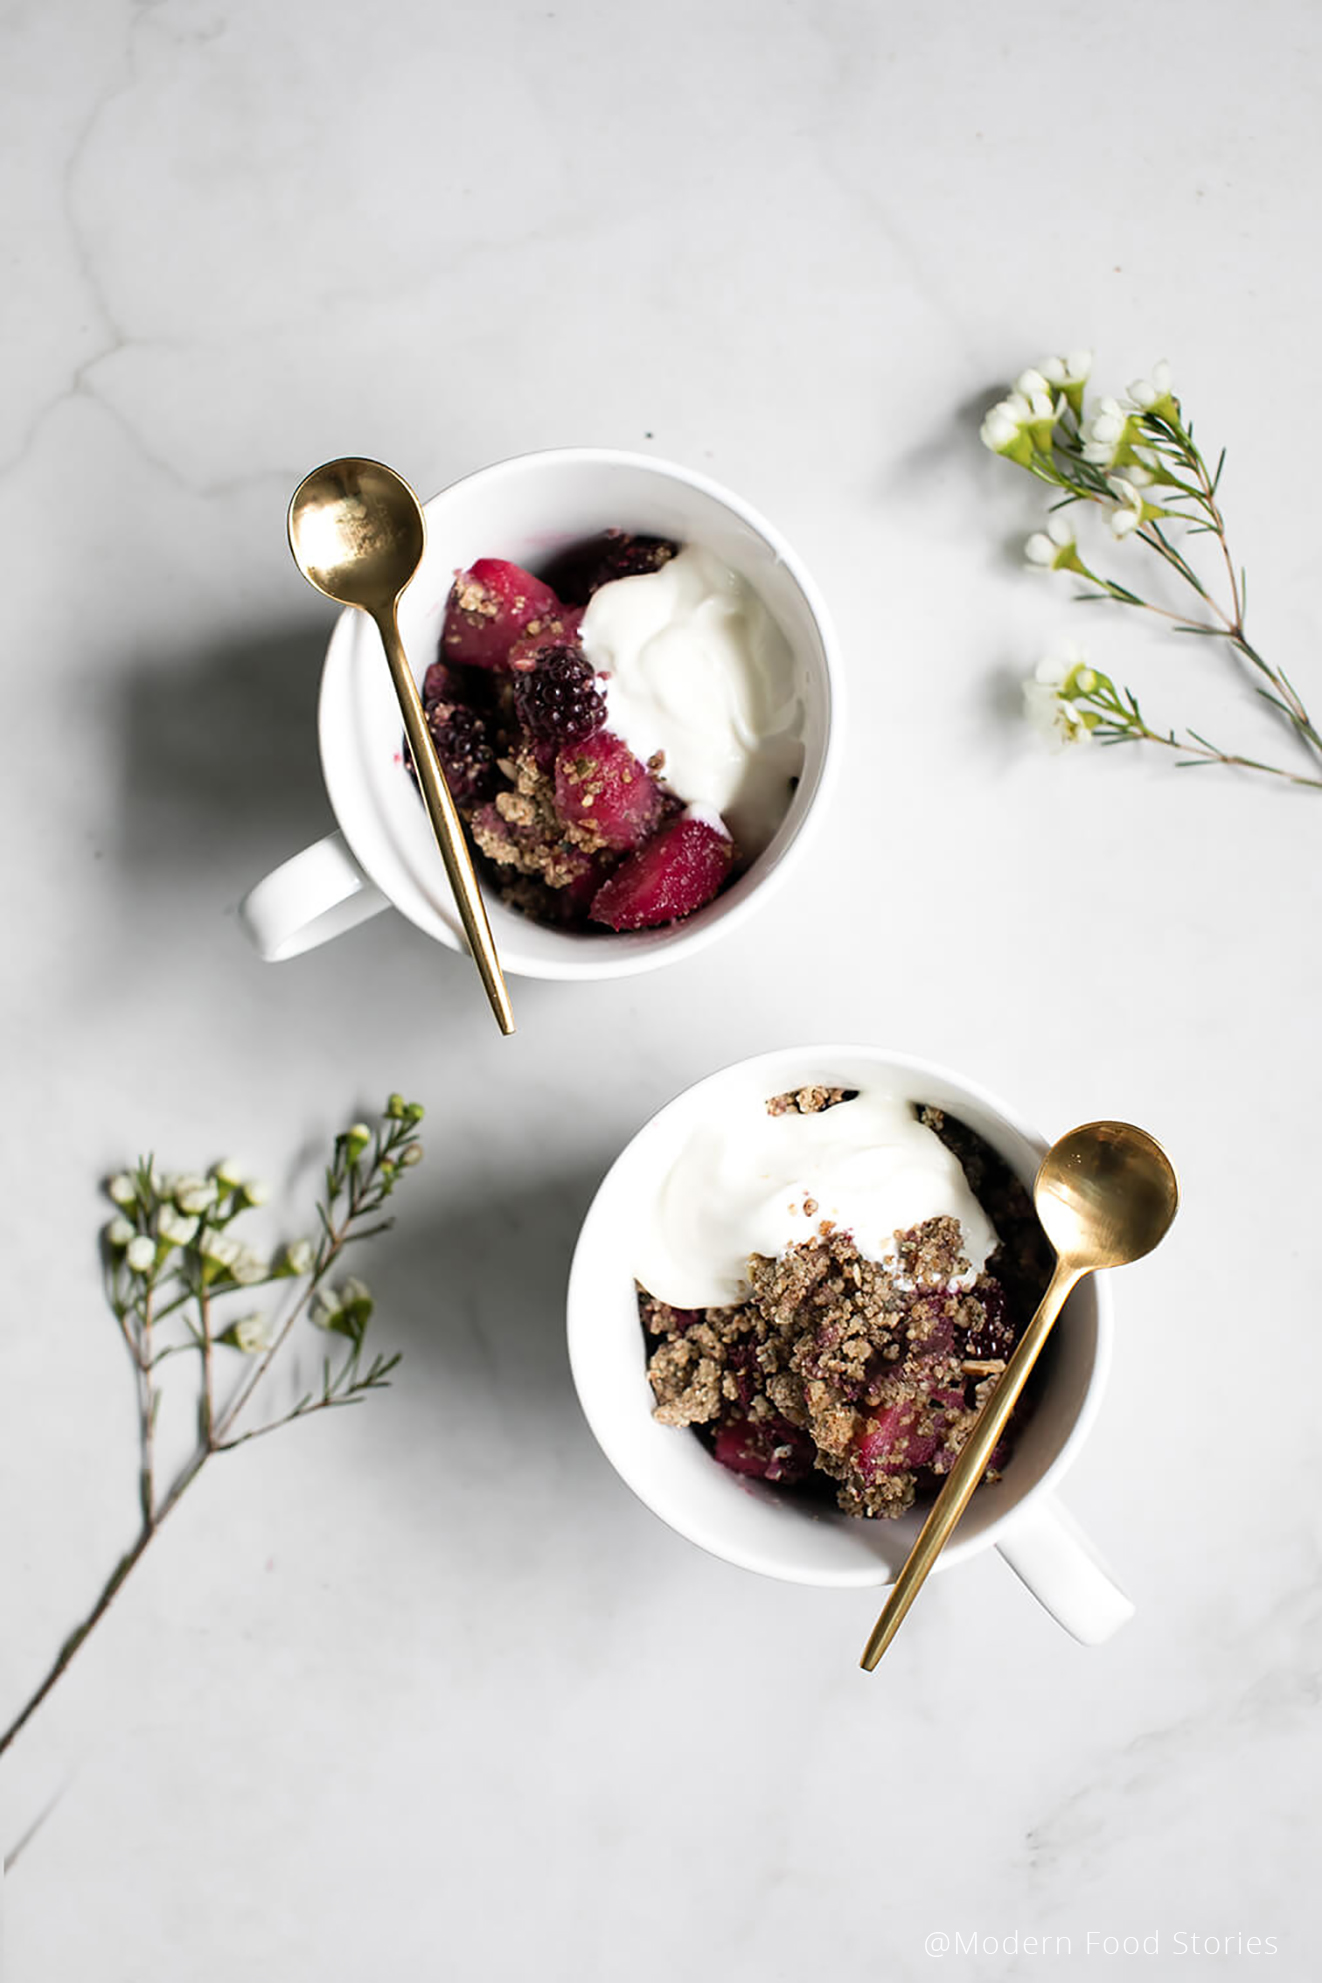 Paleo Crust, Paleo recipes, Keto recipes, low carb recipes, Pear and blackberry crumble, blackberry crumble, Gluten free crumble, grain free blackberry crumble, Paleo crumble, Paleo, Keto, Paleo recipes, Keto recipes, Whole30 crumble, I quit sugar recipes, Modern Food Stories, food photographer, food photography